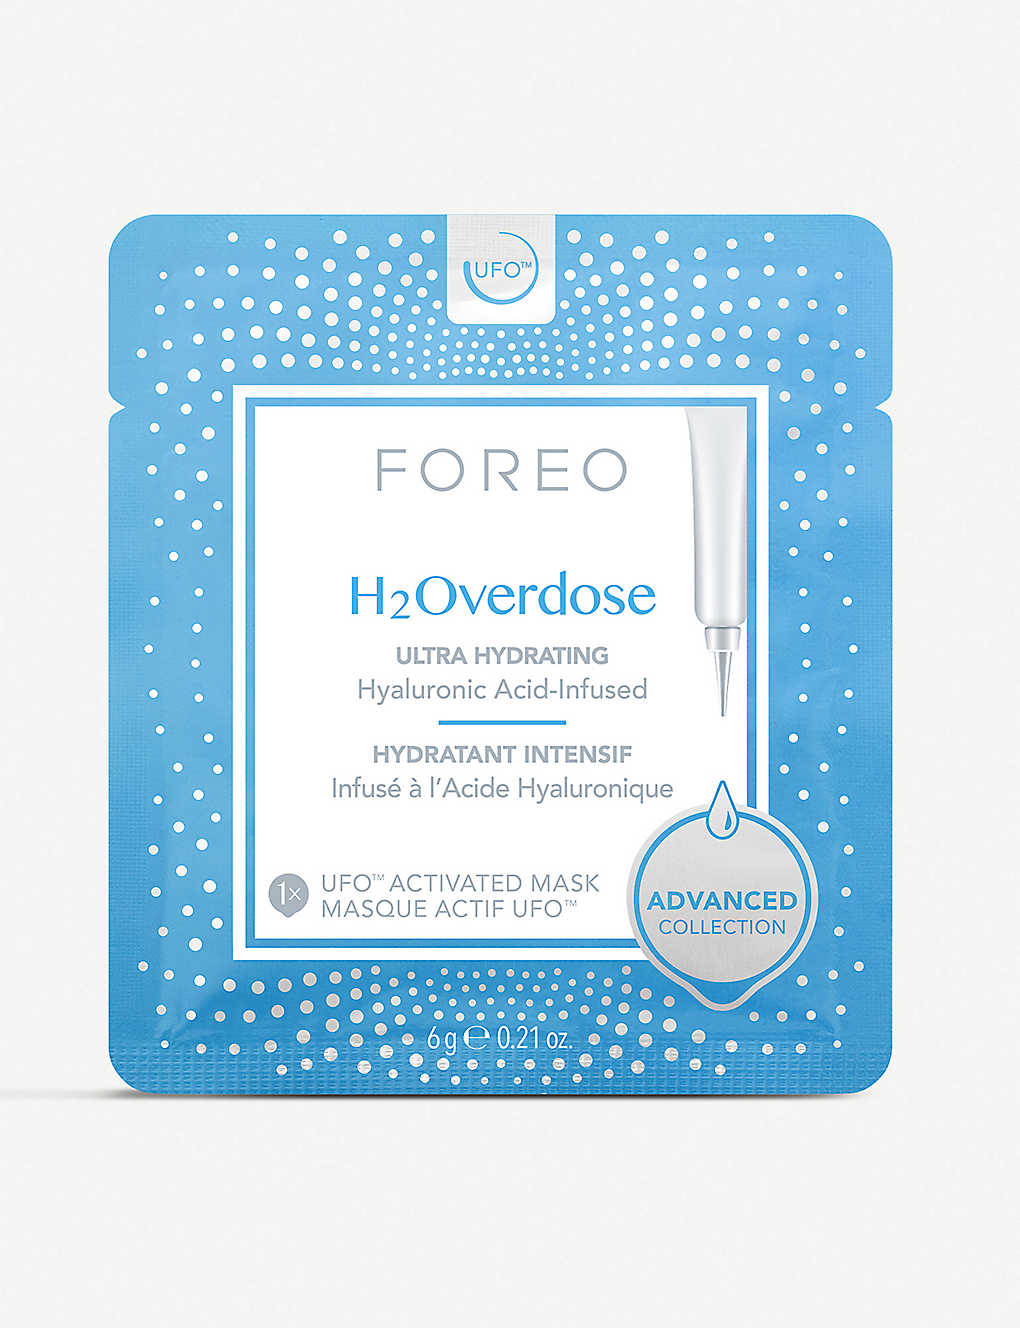 FOREO: H2Overdose UFO-Activated Mask 6 x 6g